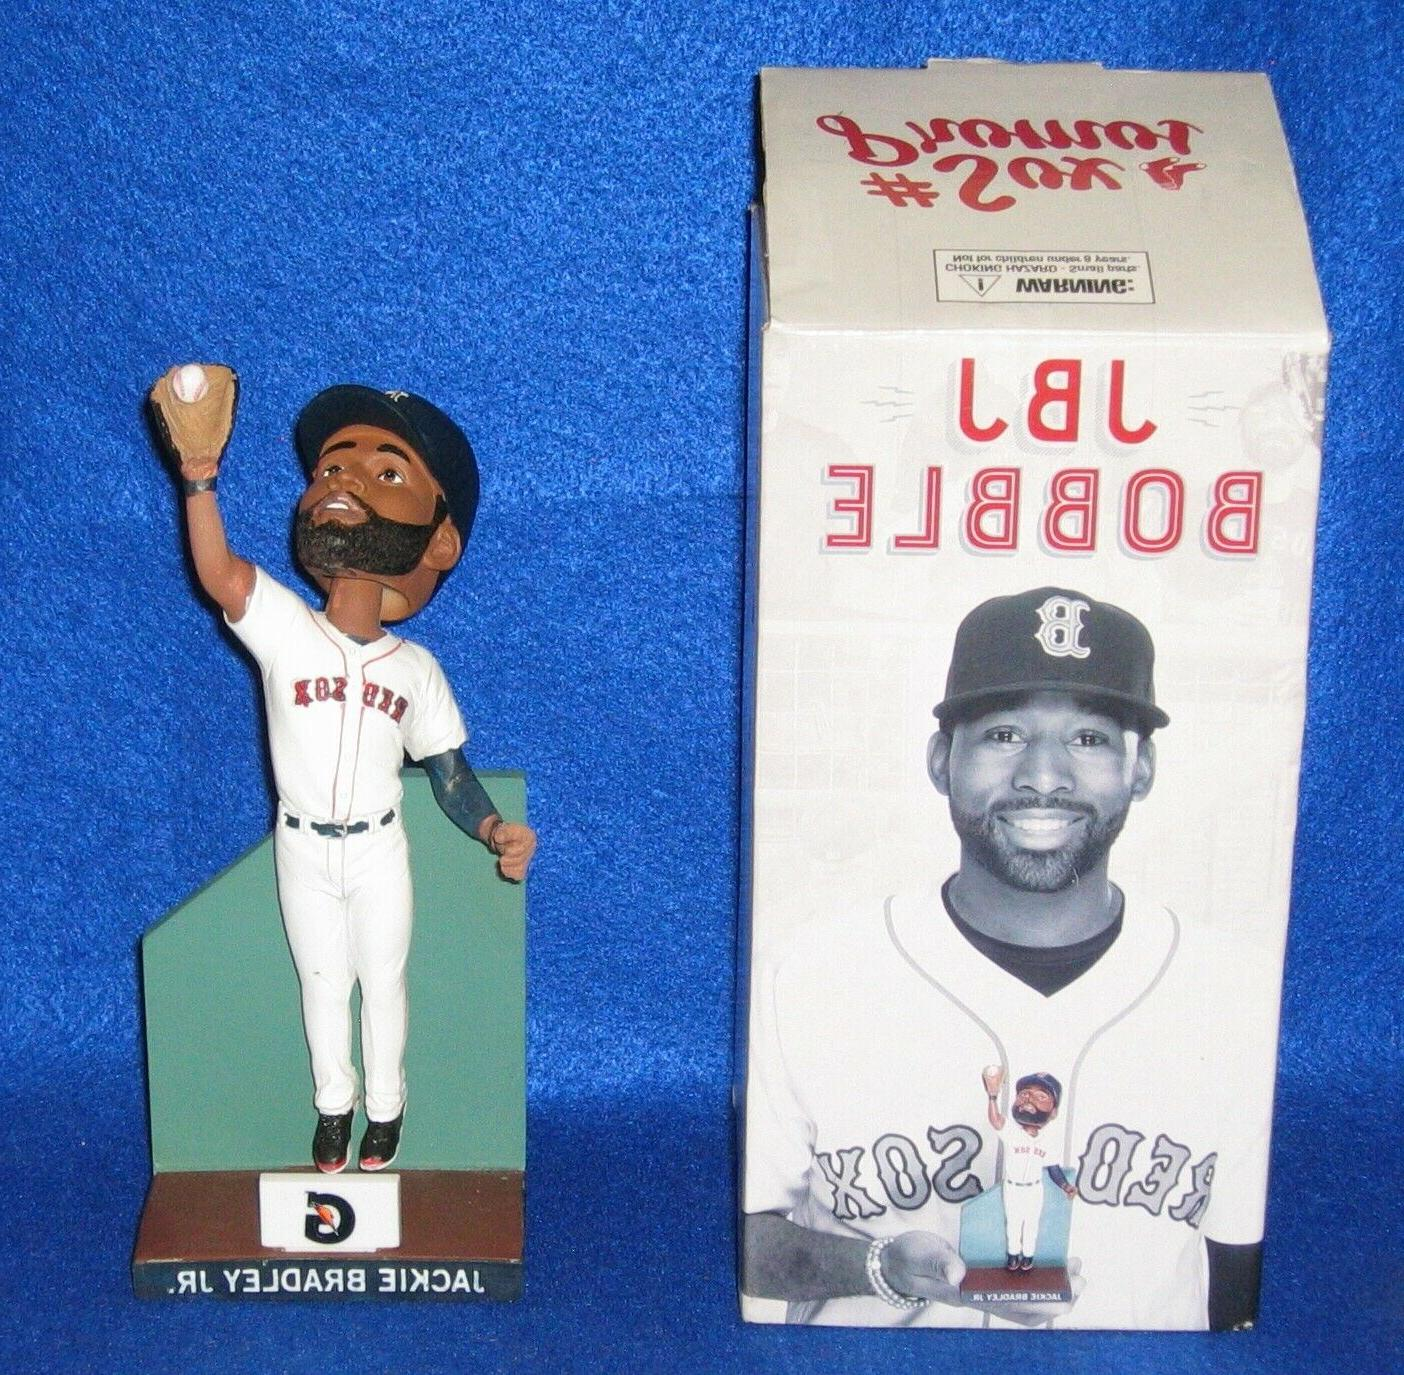 2018 jbj jackie bradley jr boston red